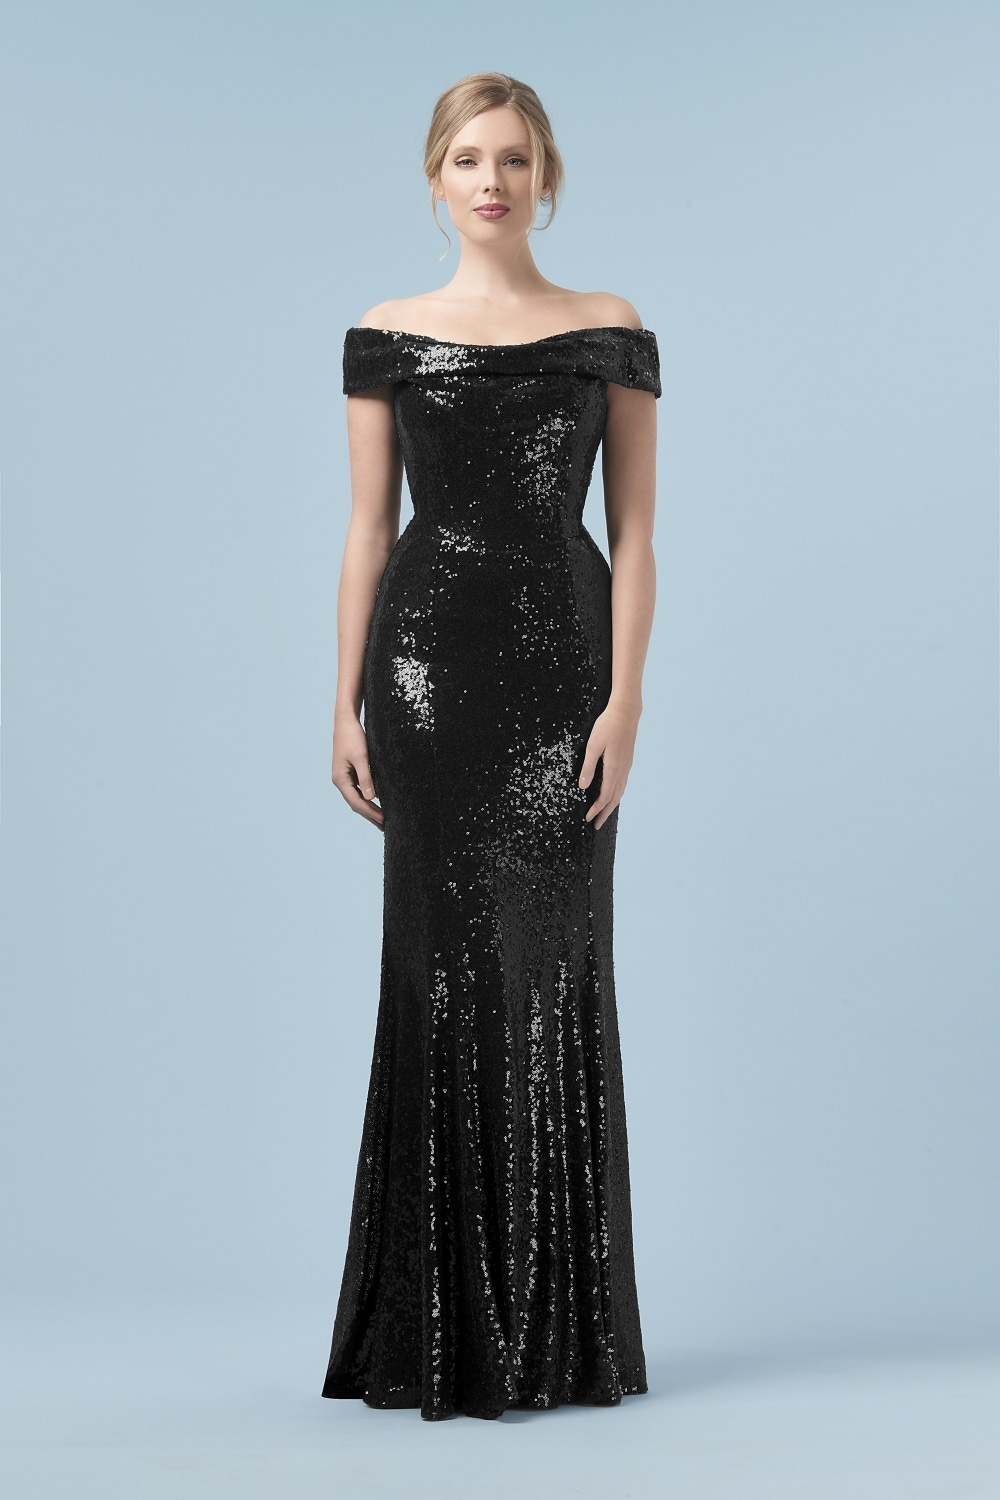 The Pretty Dress Company Thea Black Sequin Gown